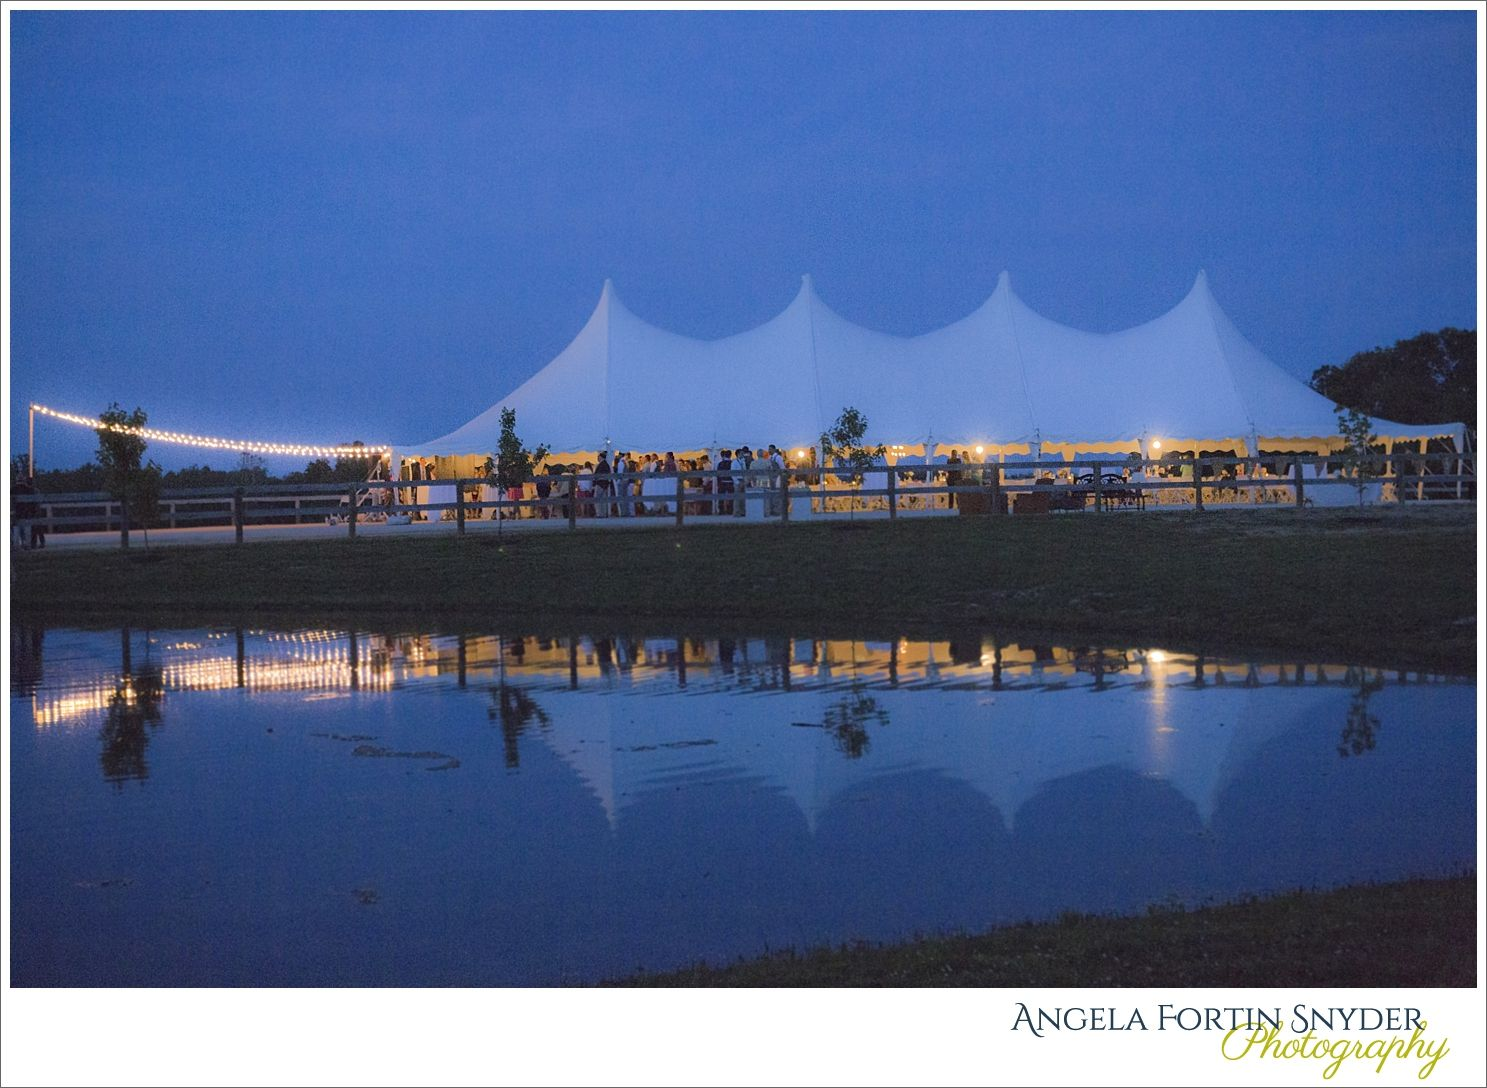 Nighttime shot of farm tent wedding with reflection in the pond..so pretty!